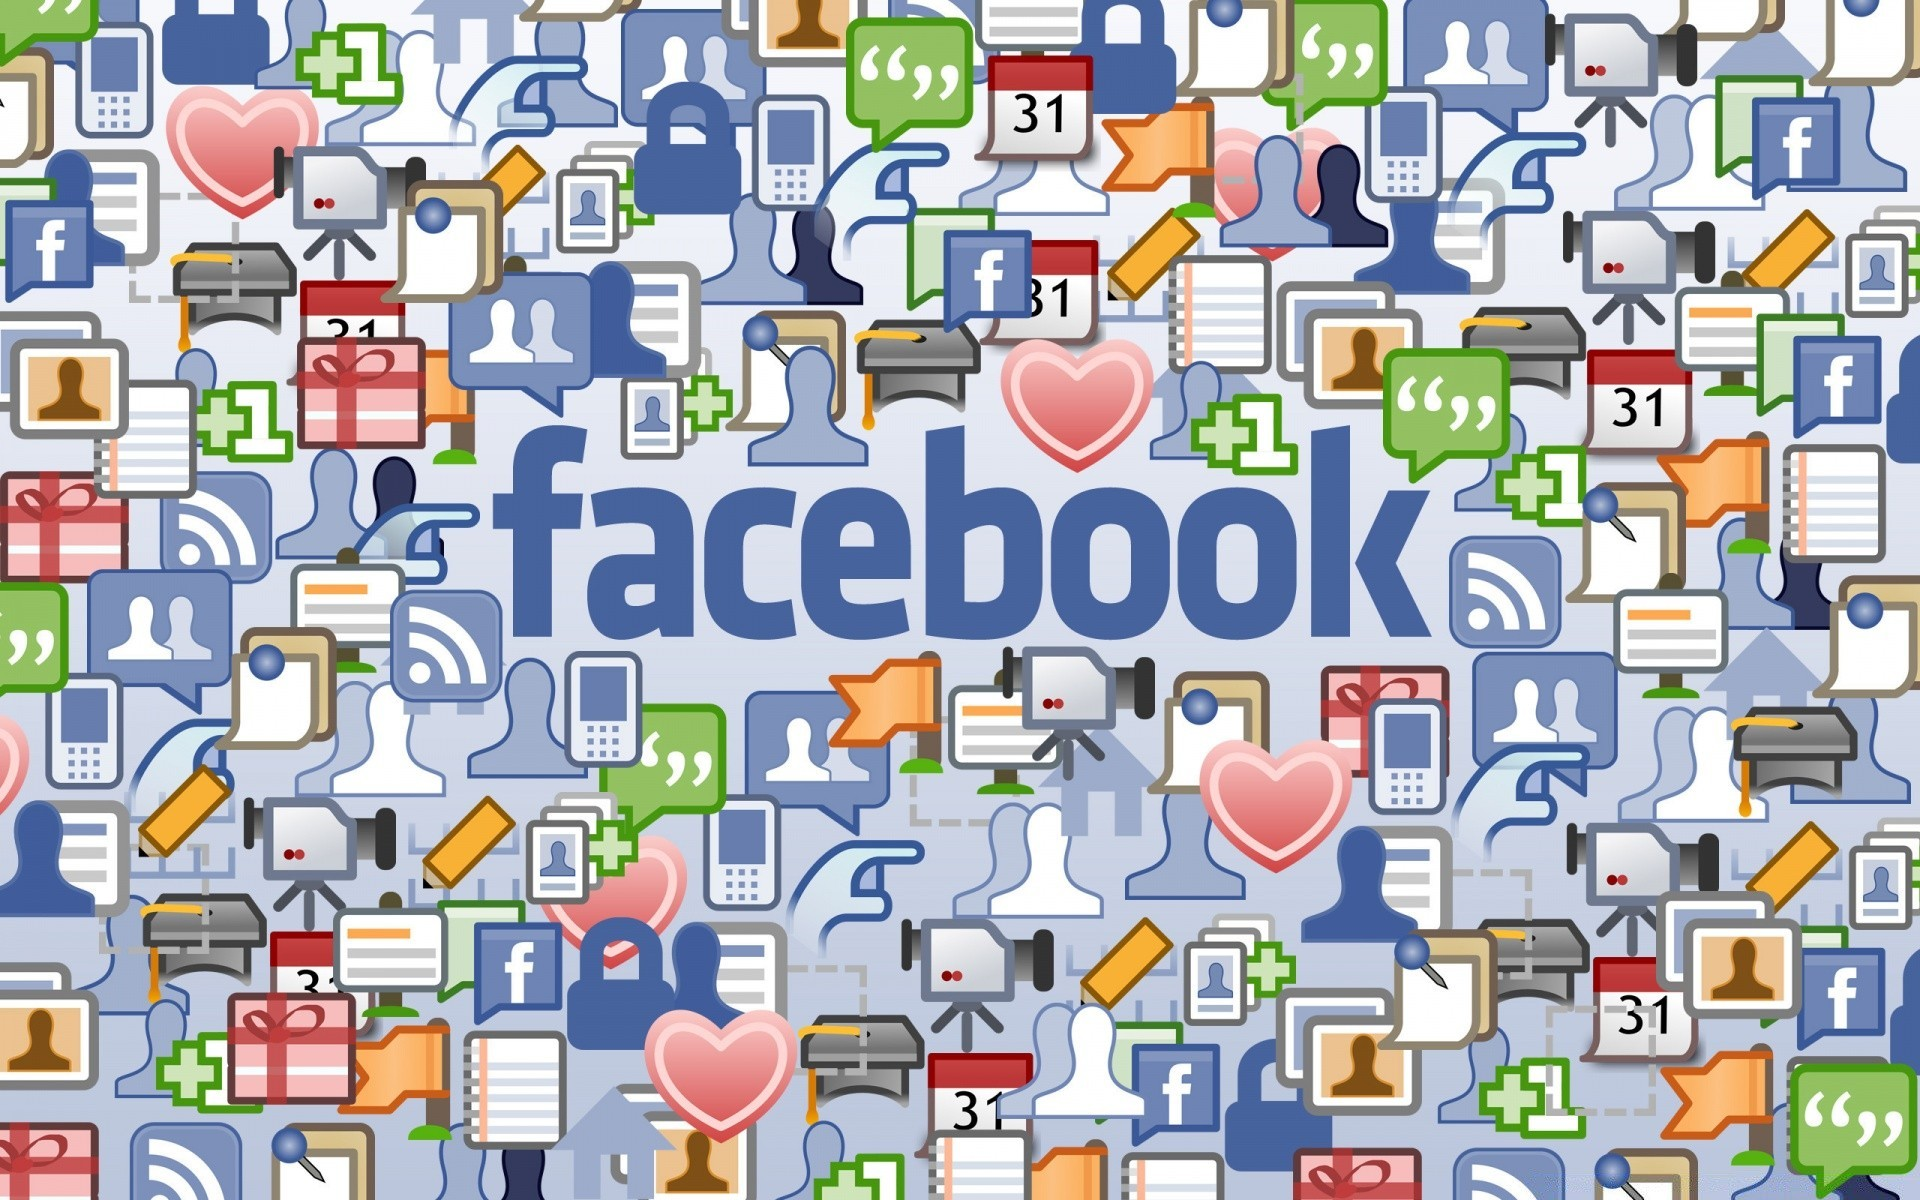 facebook is the worlds largest such network Japan's 'line' is the world's fastest-growing social network, recently having reached 50 million followers in just 399 days, and with stiff fees for businesses.